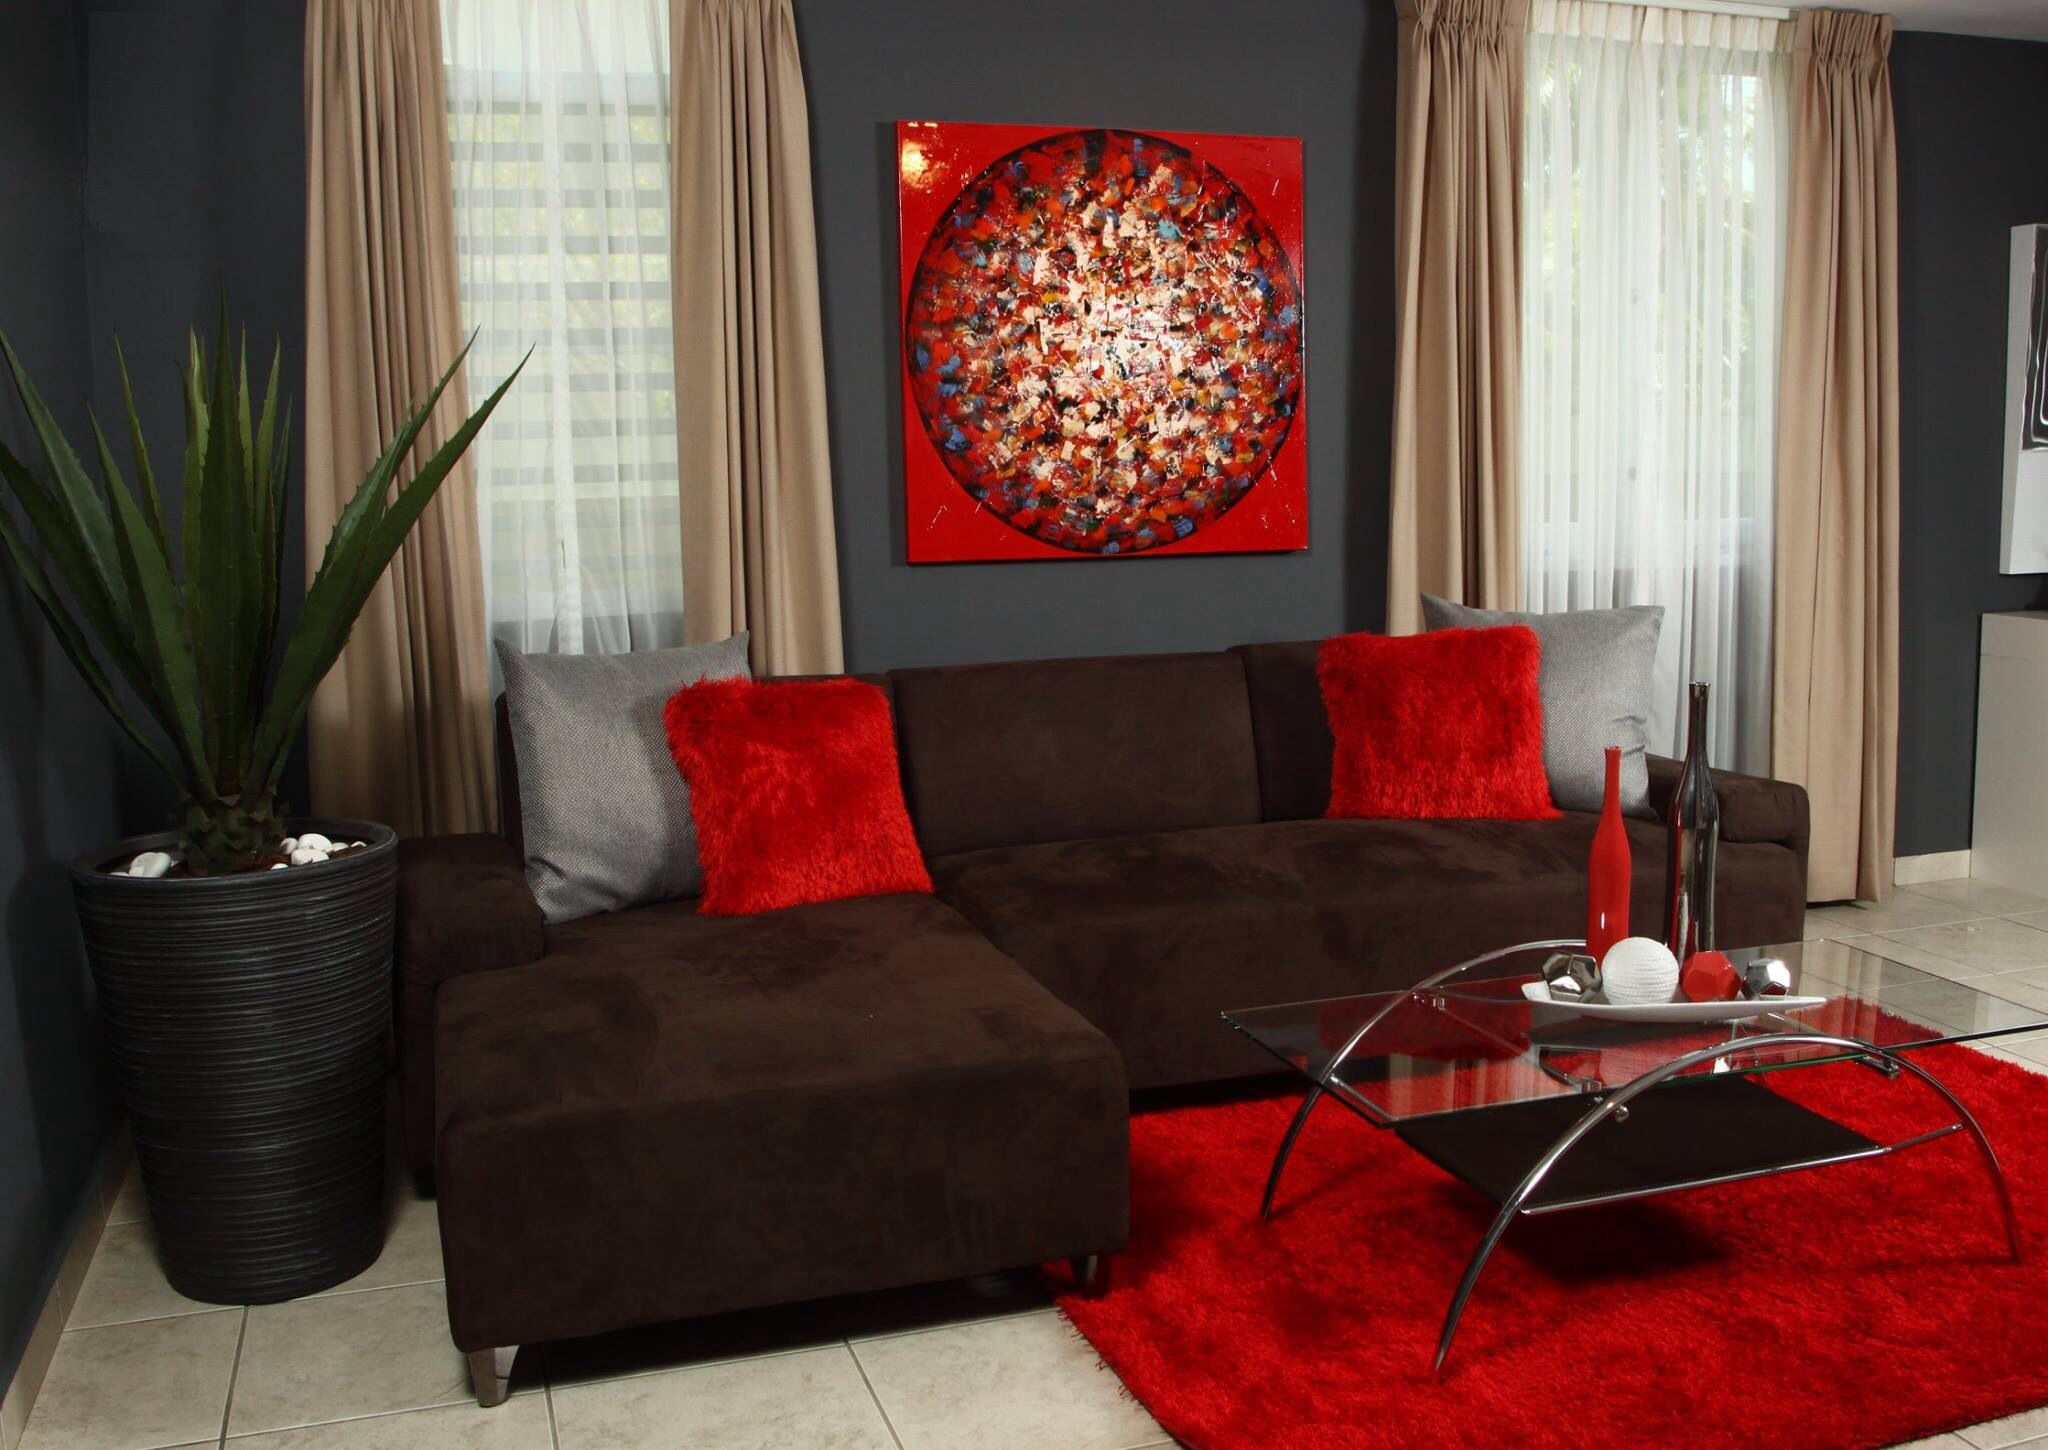 Red Decoration For Living Room Love It Home Decor Pinterest Red Living Rooms Decoration